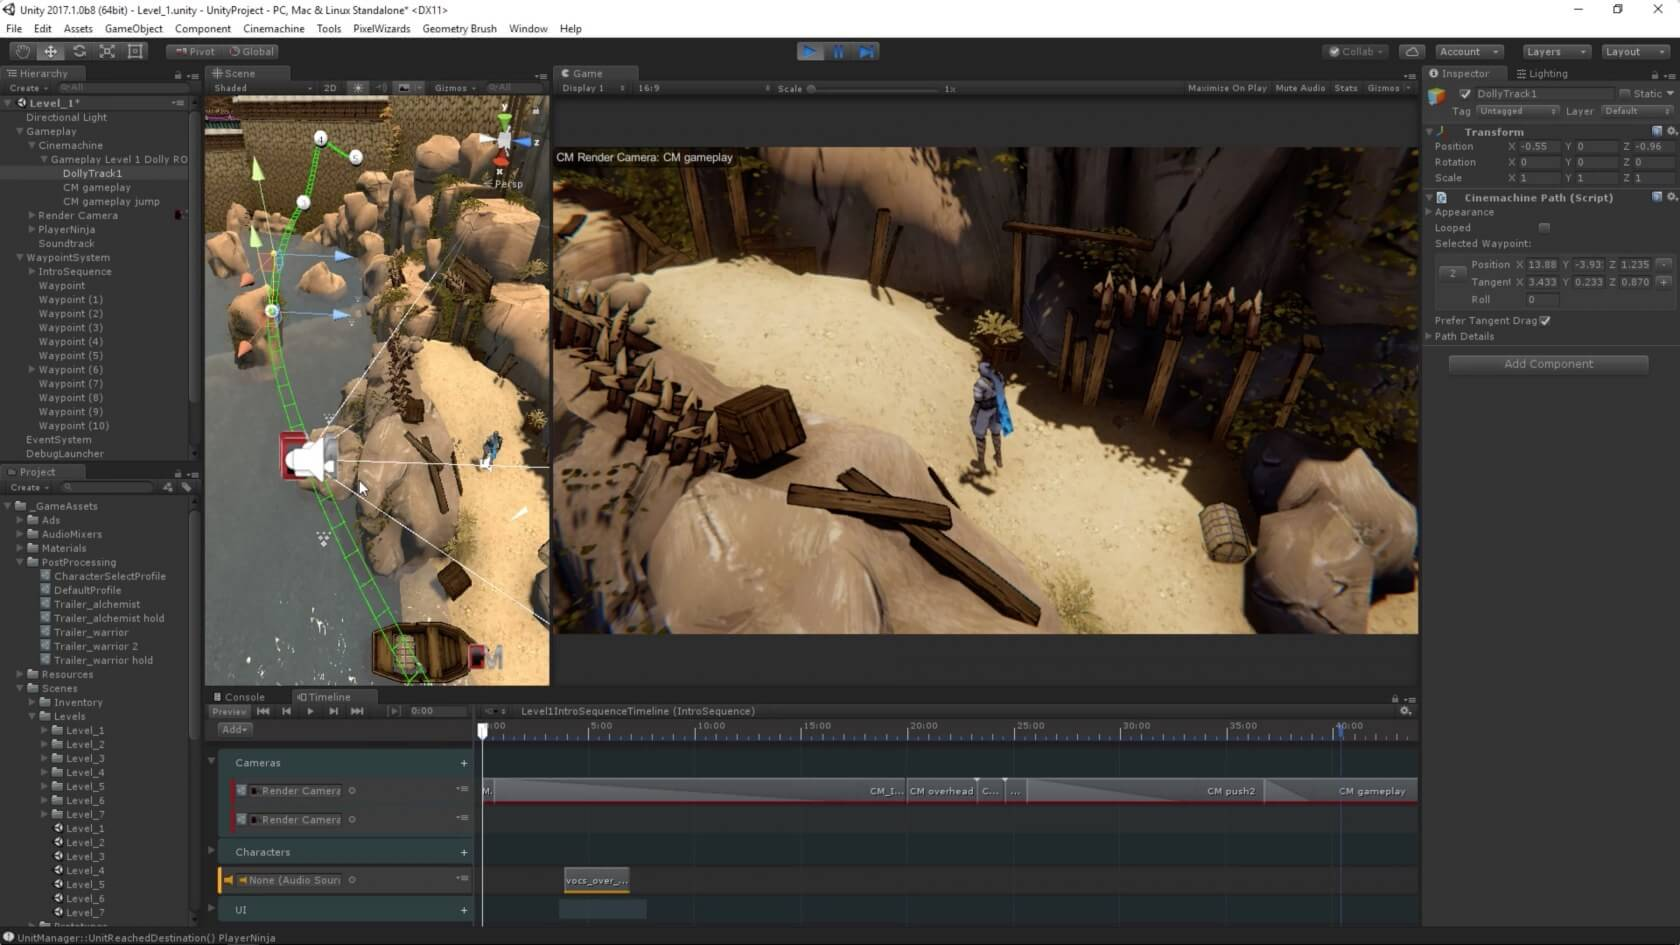 Unity is reportedly planning to go public later this year